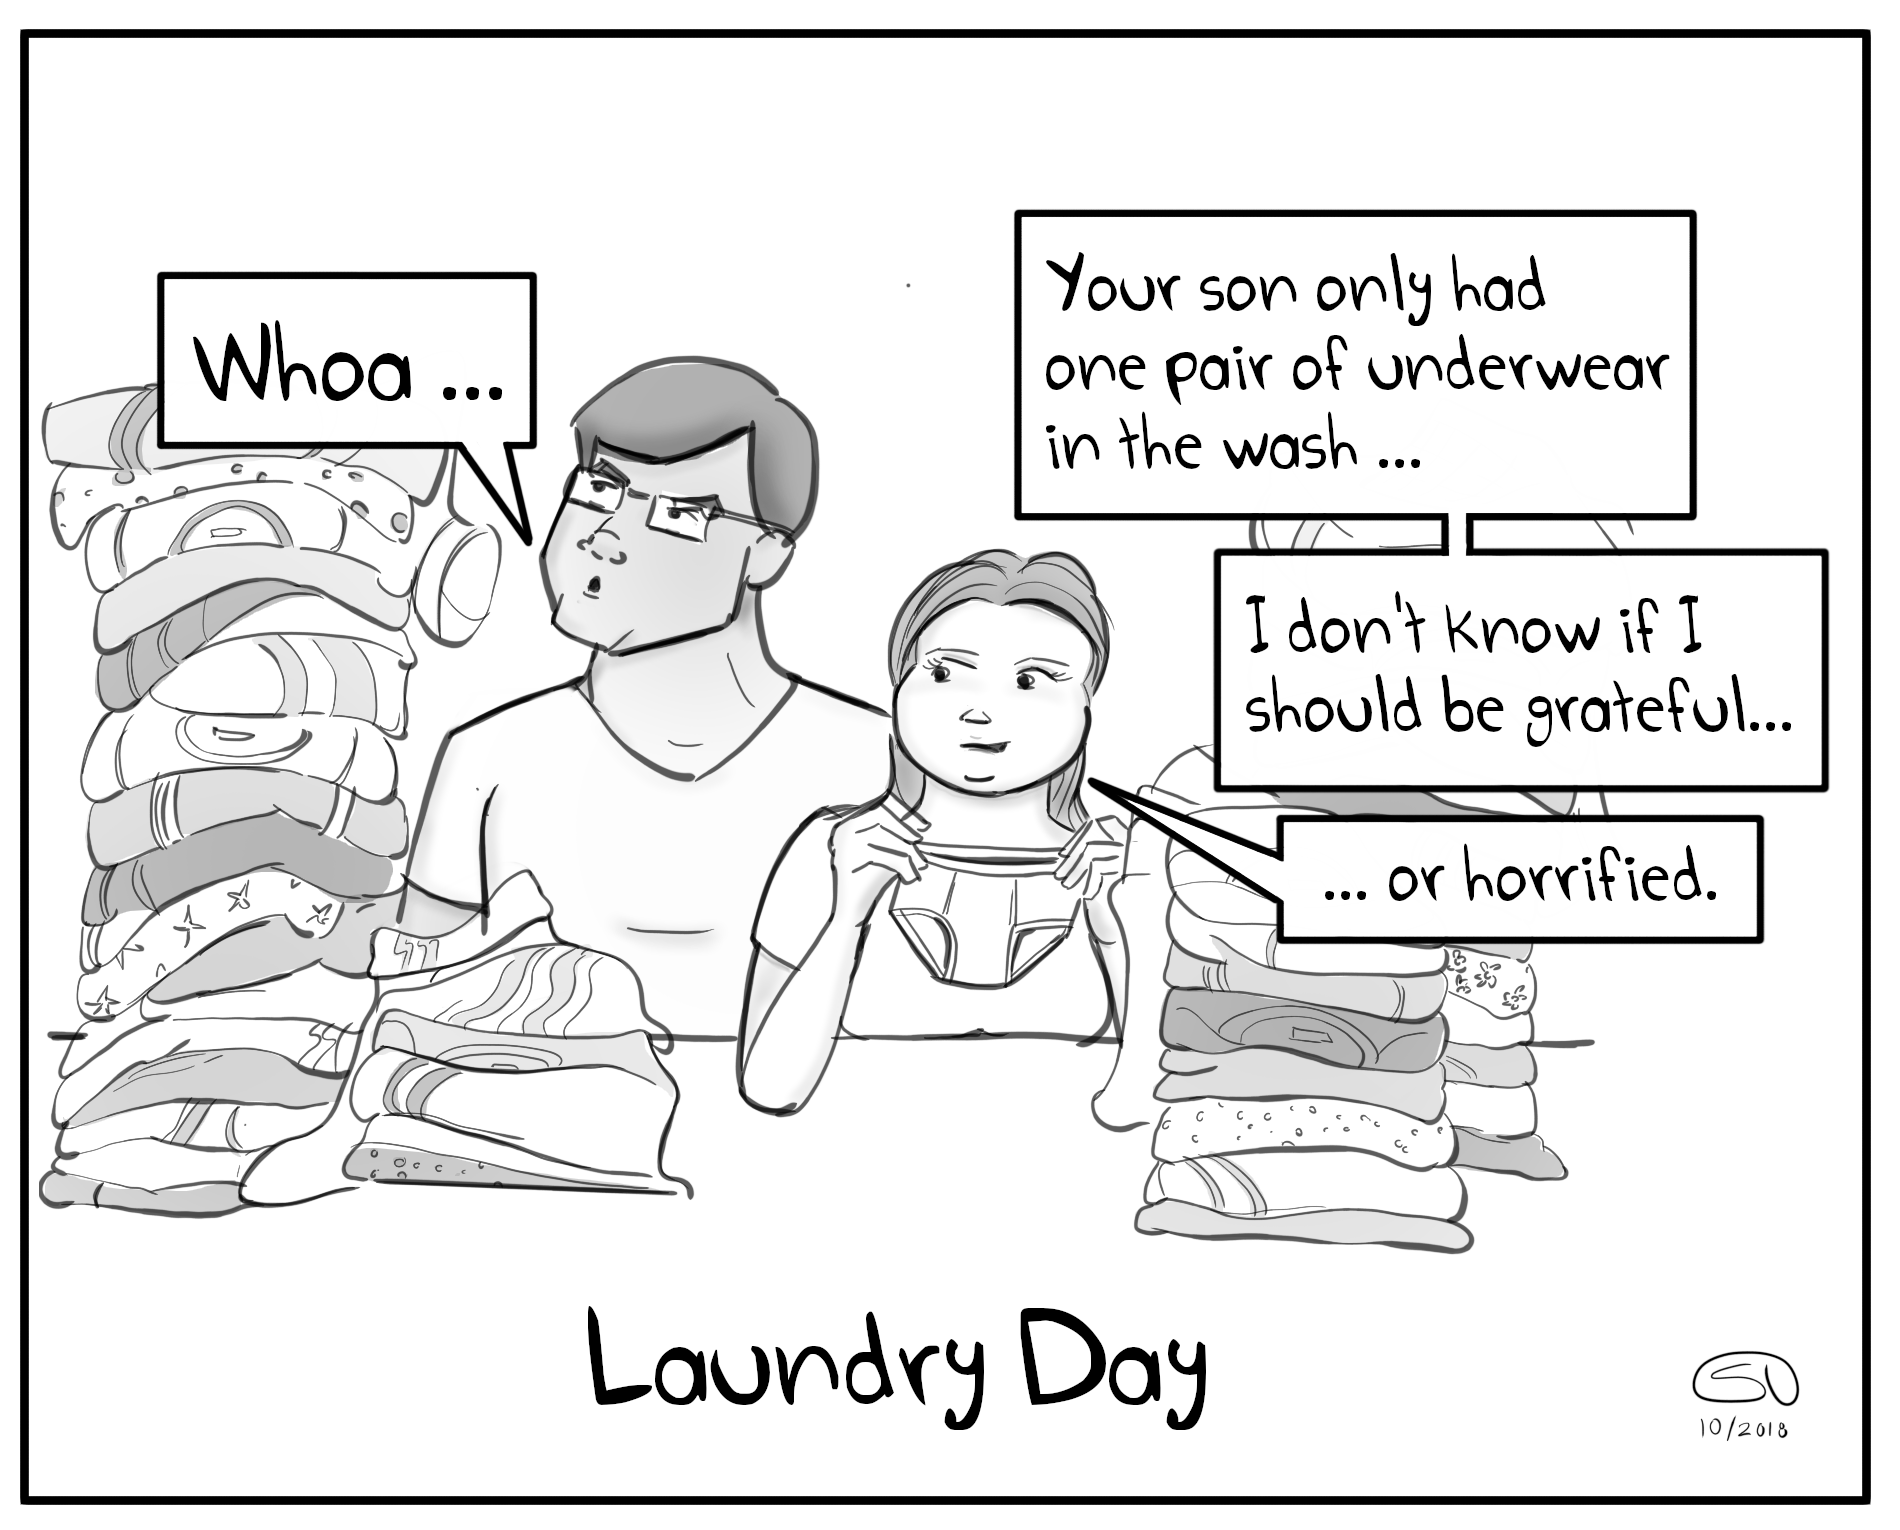 Chores Mom Laundry Day Underwear Kids Laundry Elementary School Family Parenting Comic